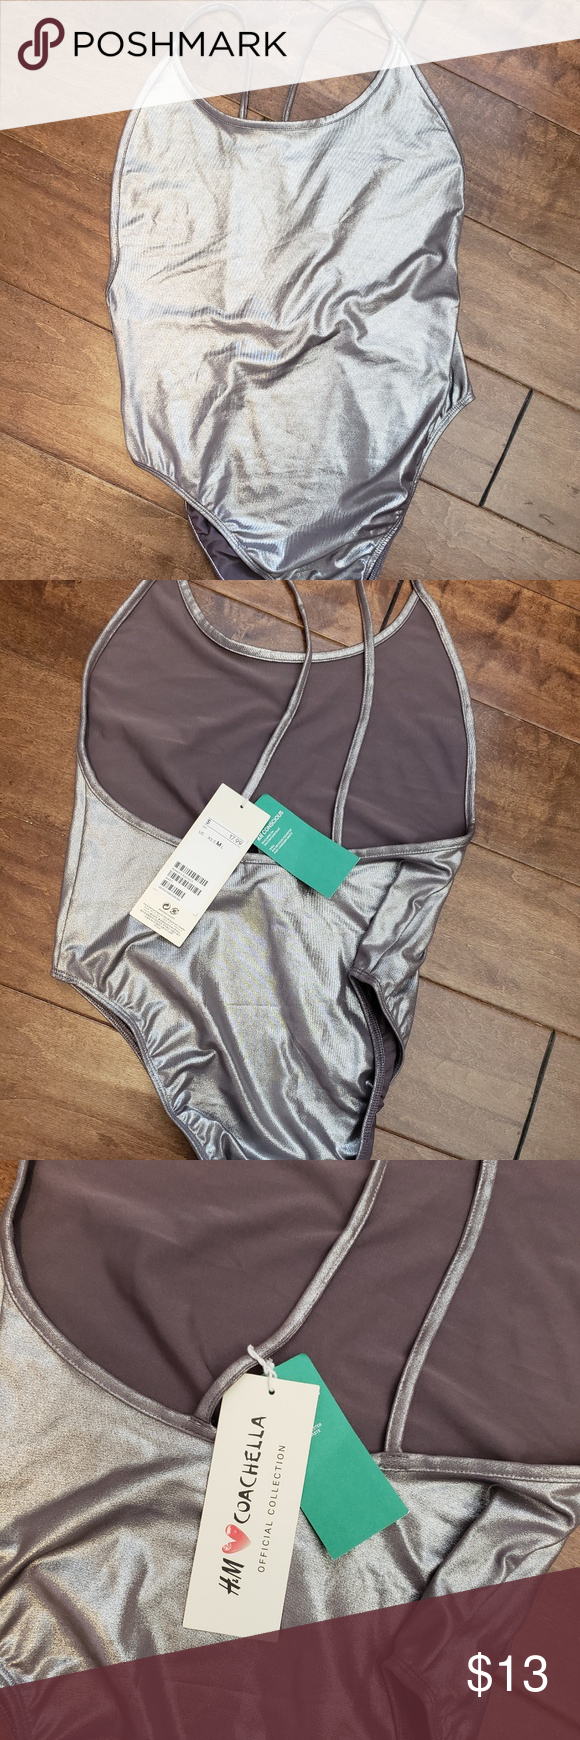 c1b88ee4a207e H&M one piece swimsuit. Silver metallic. New. Size M H&M Swim One Pieces